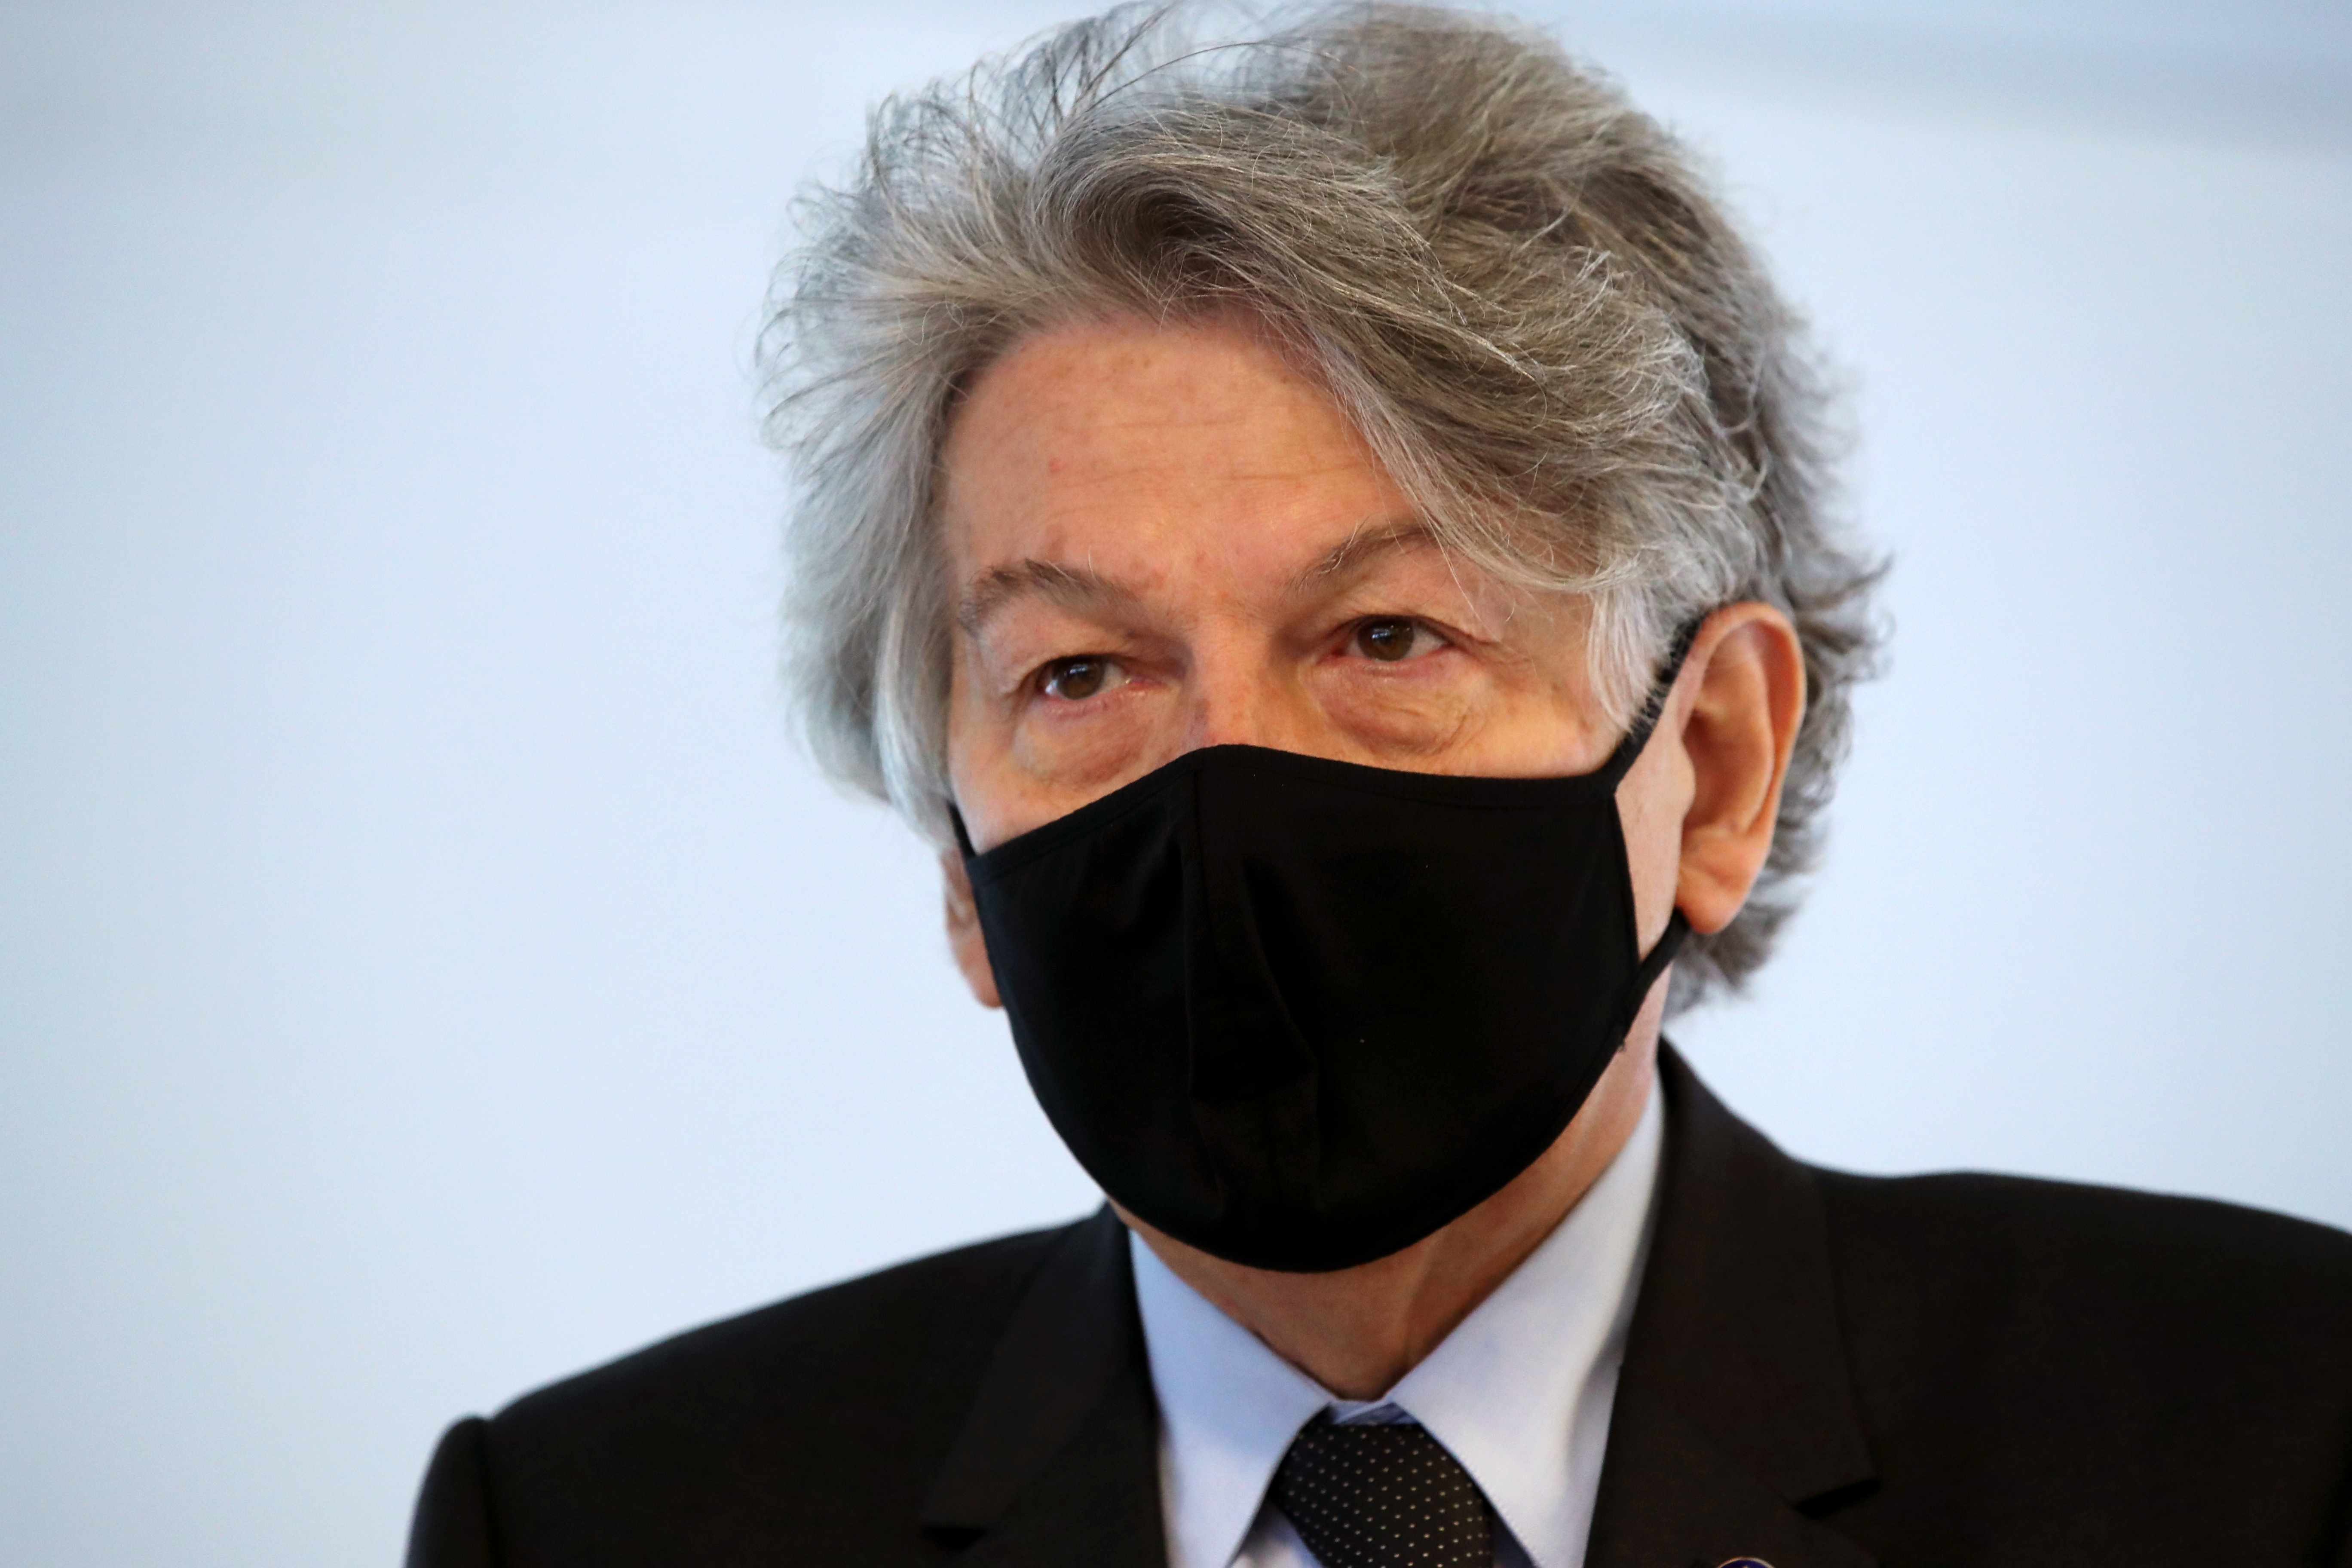 European Industry Commissioner Thierry Breton, wearing a protective face mask, attends a presentation before a visit at the Thermo Fisher plant, former Novasep, producing COVID-19 vaccines for AstraZeneca in Seneffe, Belgium, February 10, 2021.  REUTERS/Yves Herman